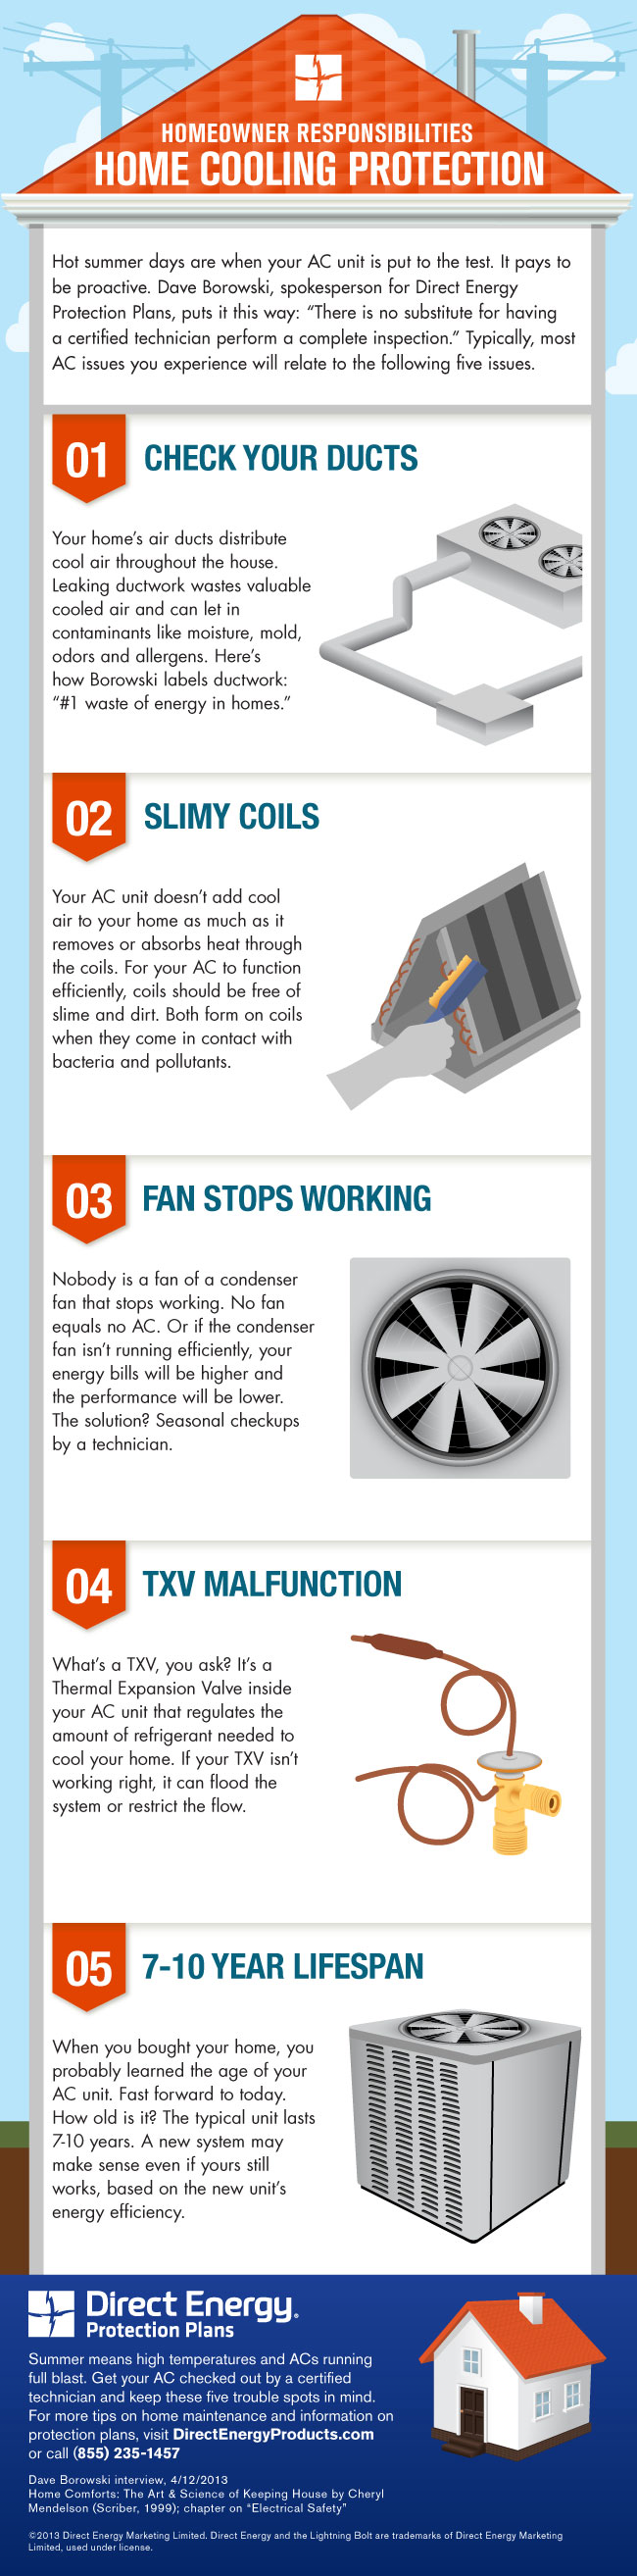 Top 5 air conditioning issues infographic from Direct Energy Protection Plan